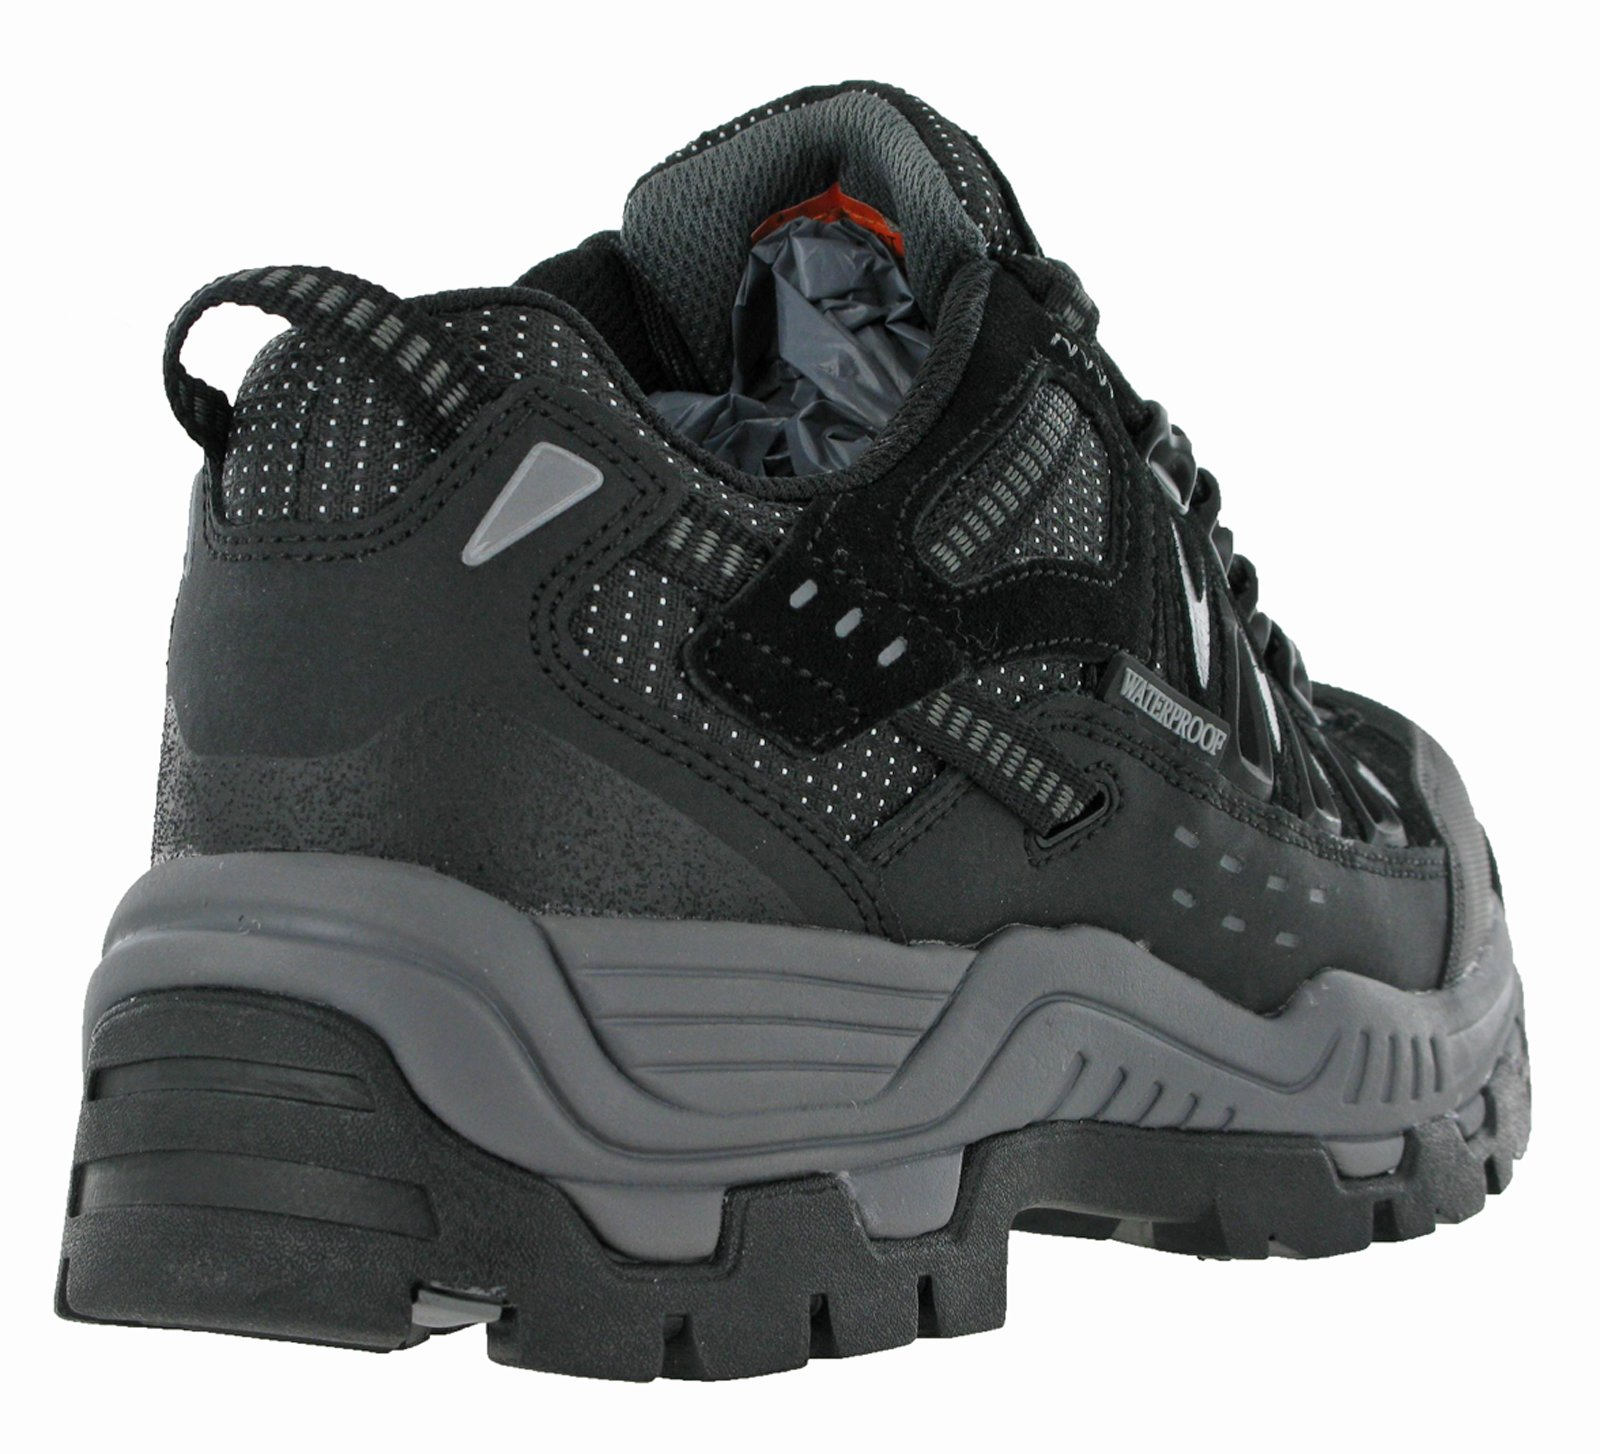 Northwest Waterproof Hiking Shoes Walking Piers Low Cut Trainers 6